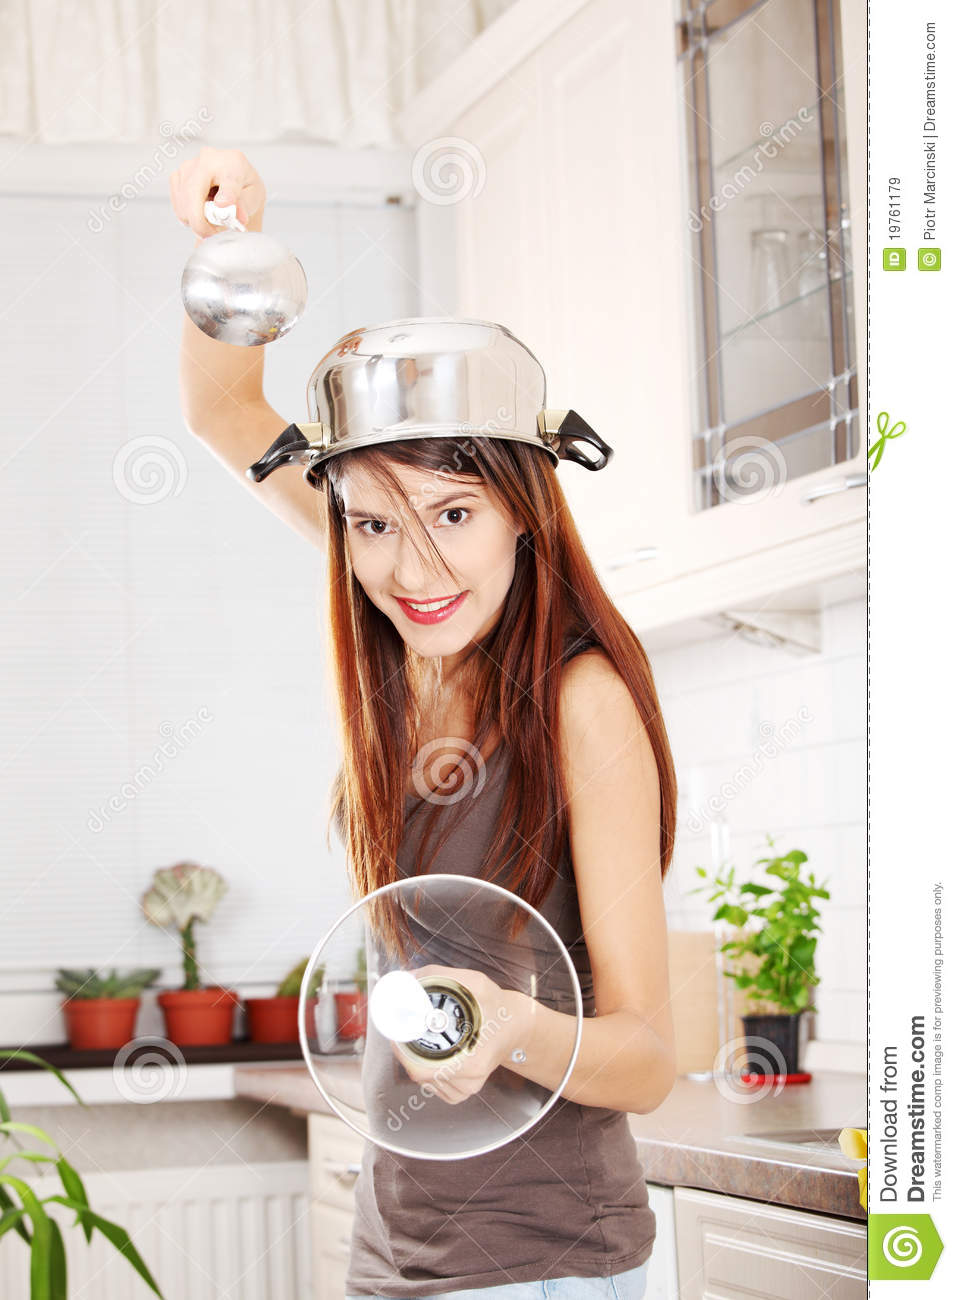 Kitchen Knight Royalty Free Stock Images - Image: 19761179